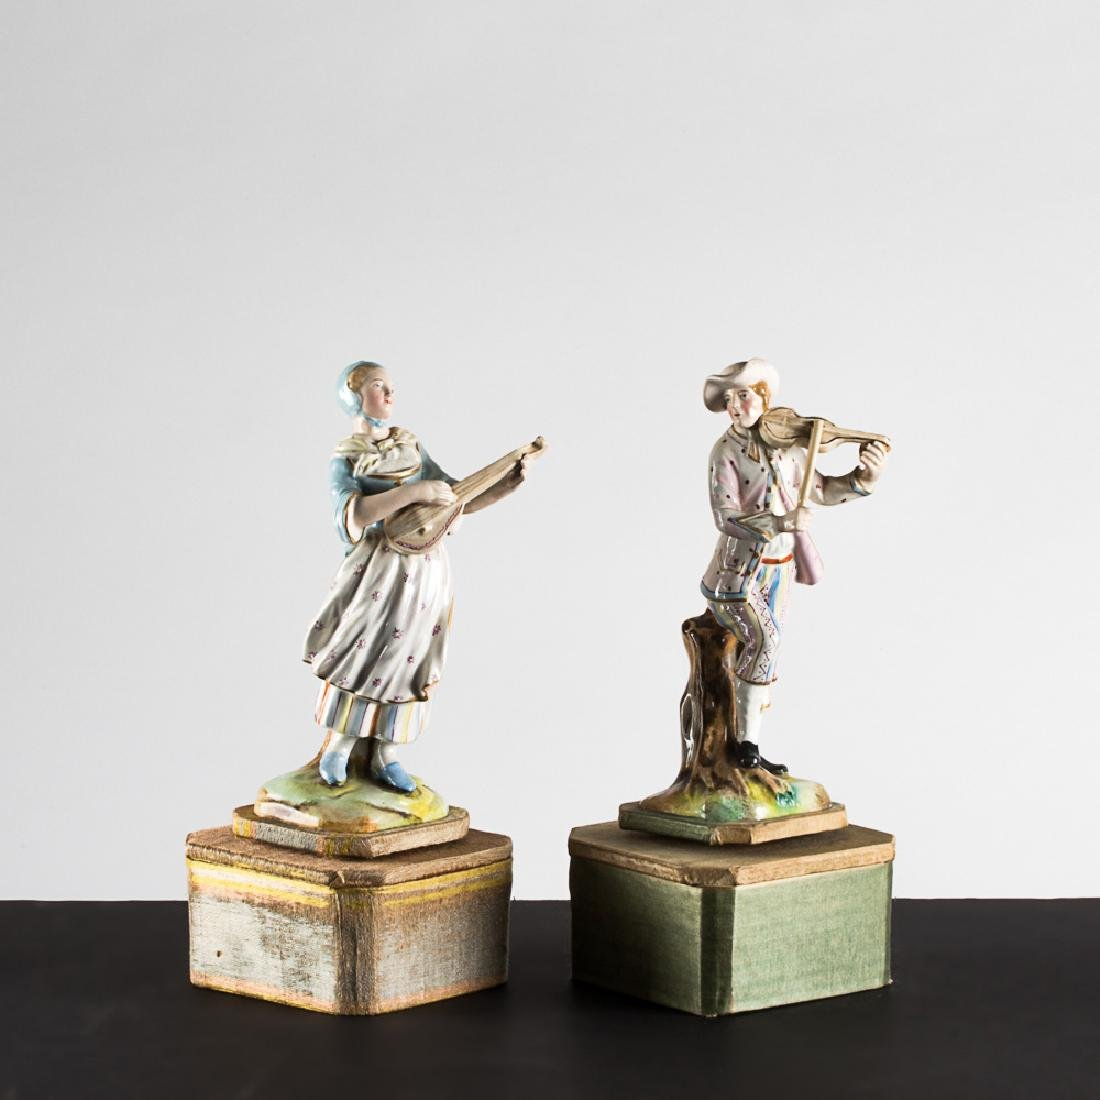 A Pair of French Porcelain Automatons Depicting a Male